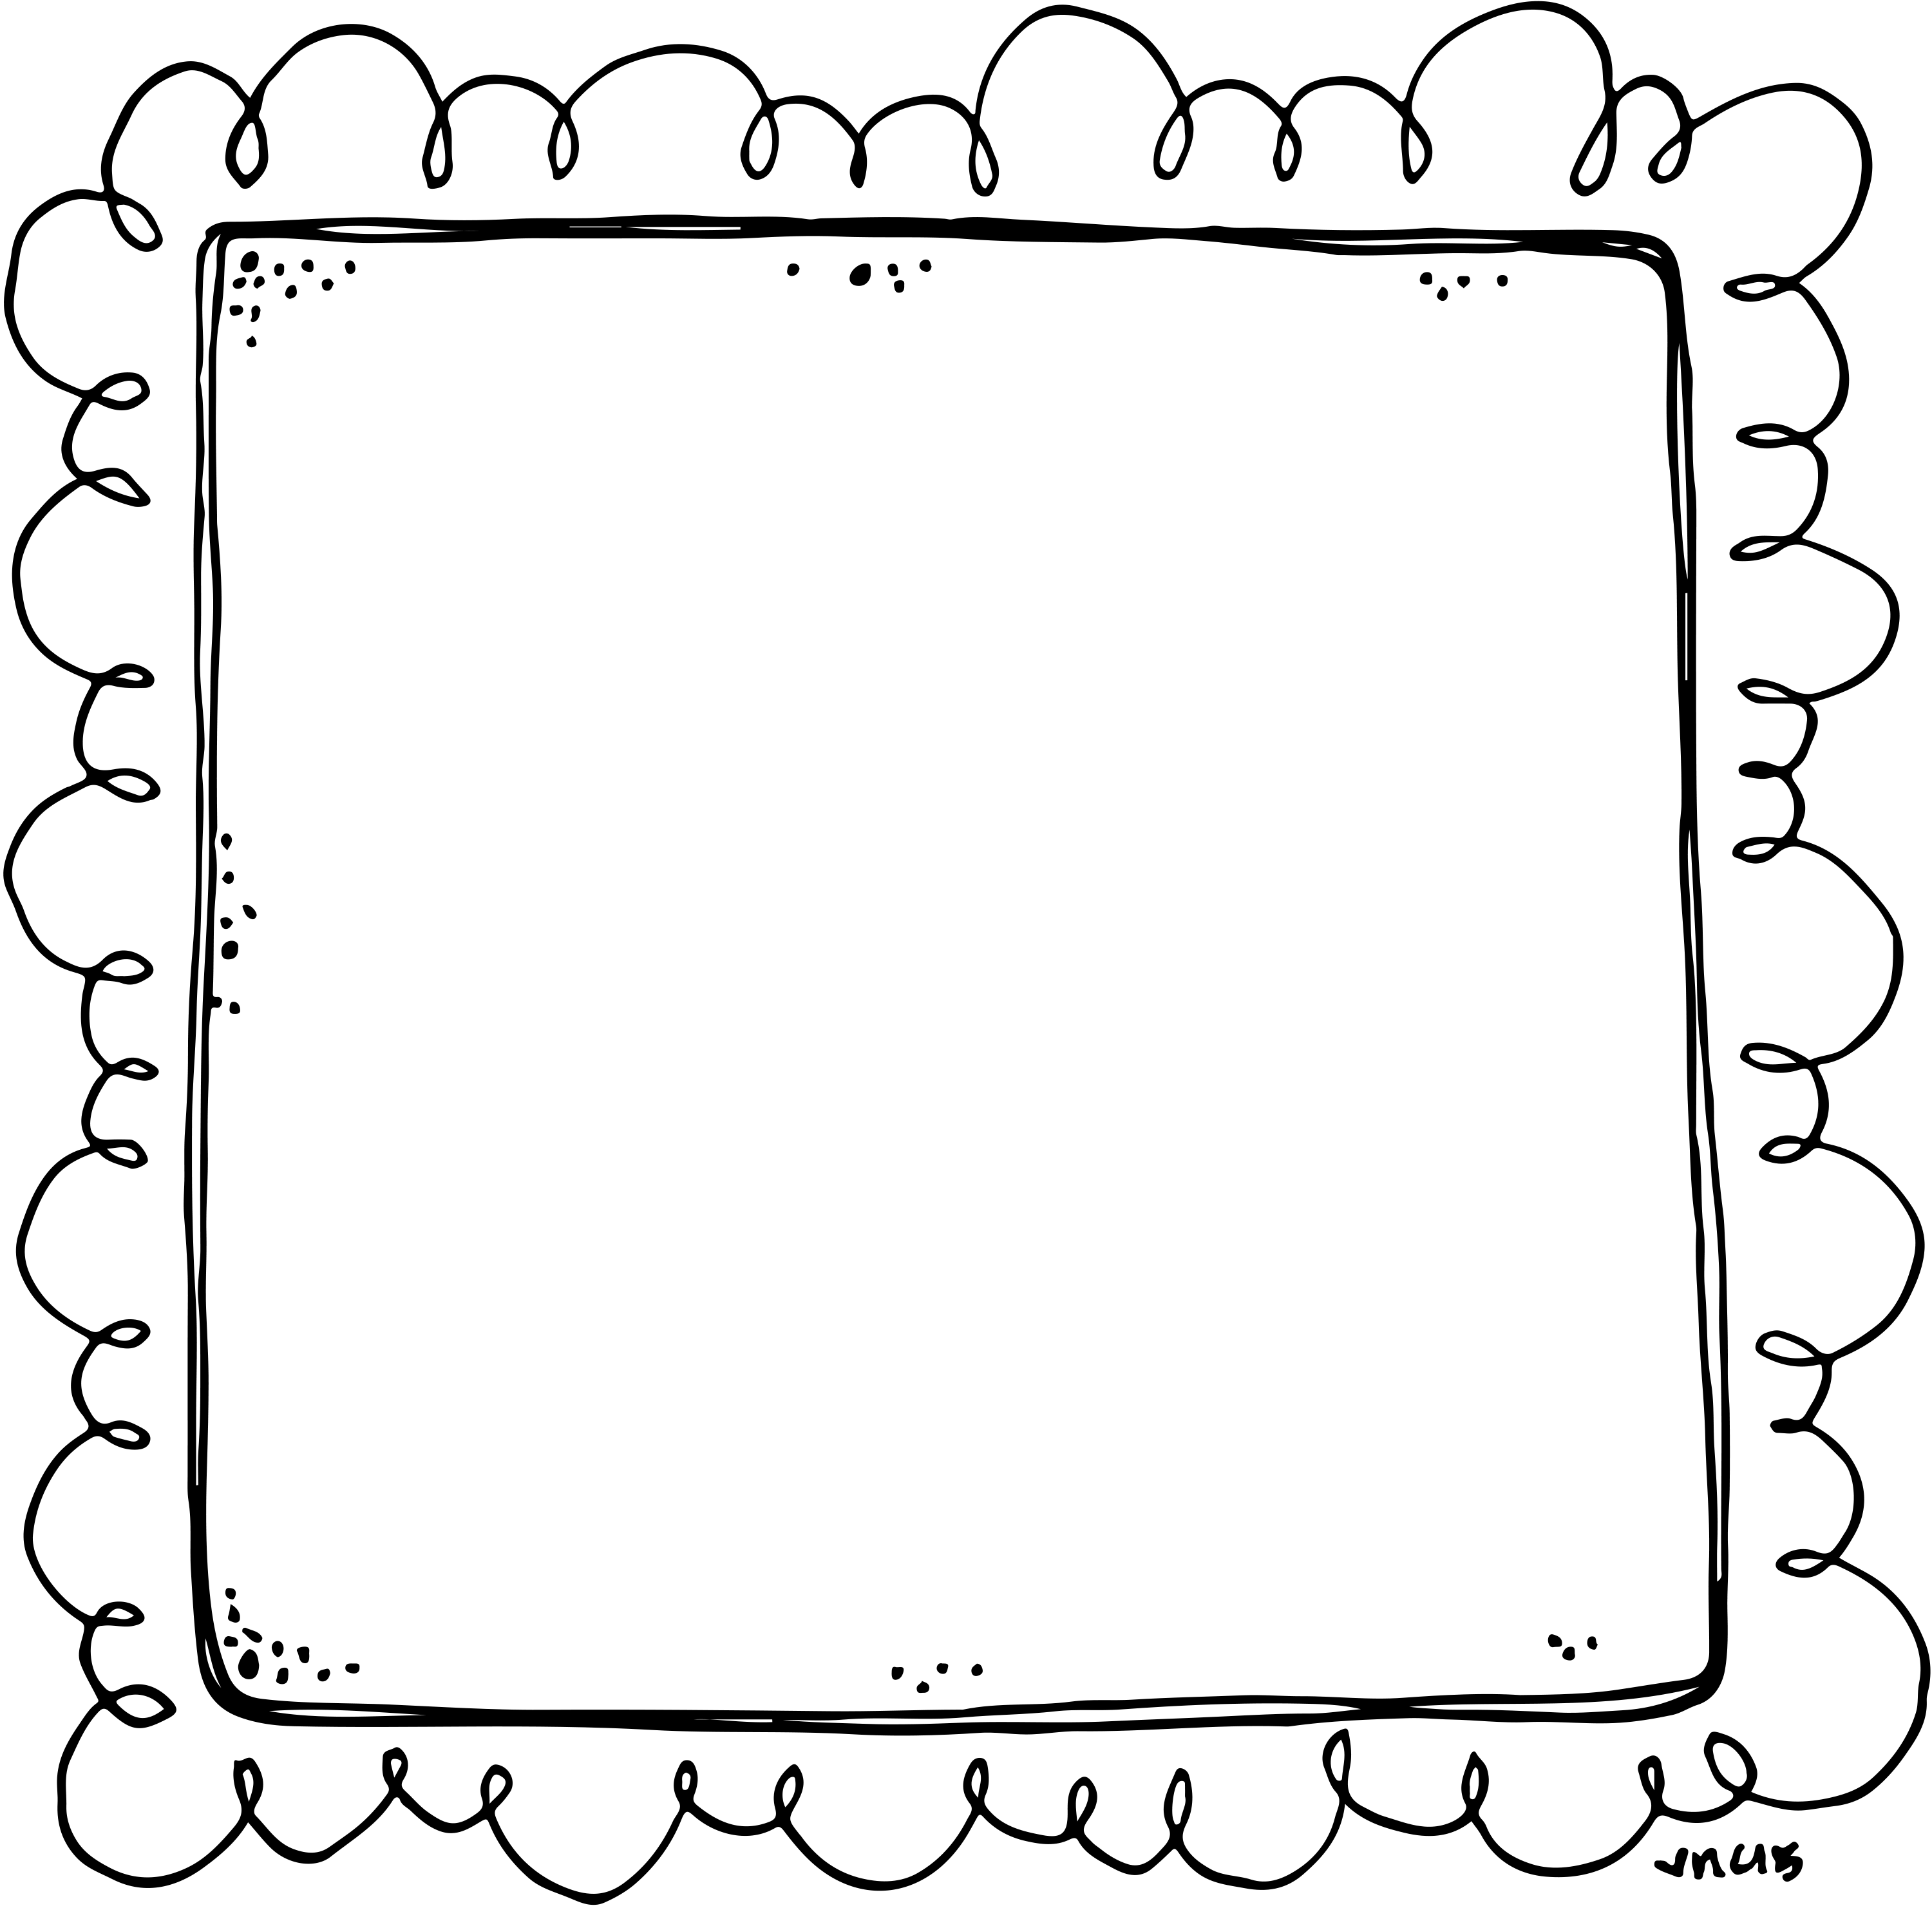 School supplies clipart black and white borders jpg stock Border or Frame for newsletters, announcements.... | BLACK AND WHITE ... jpg stock